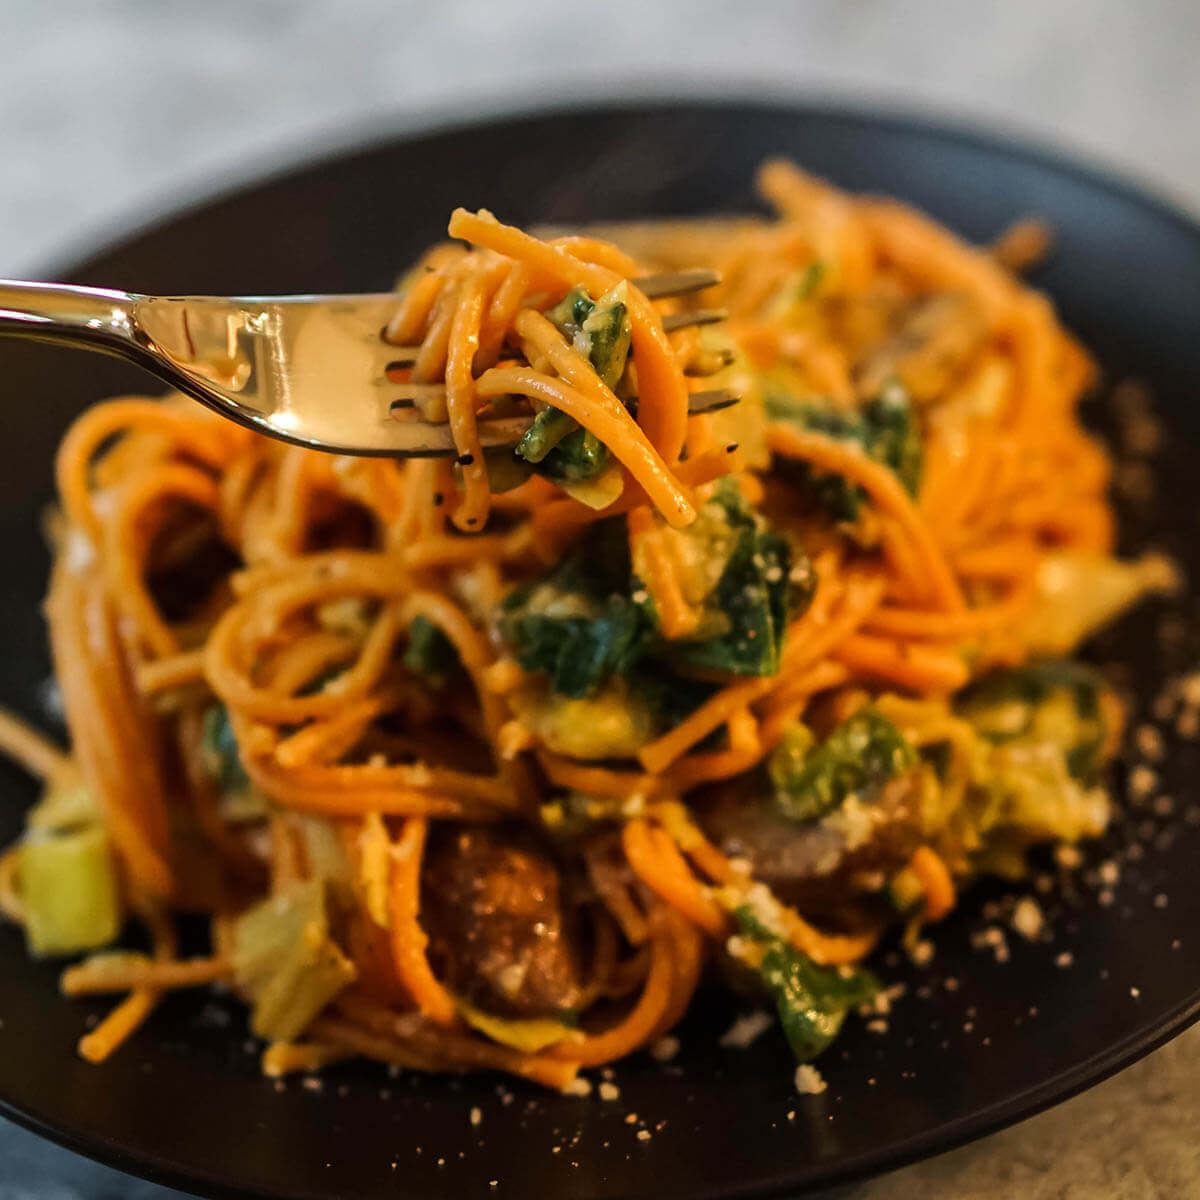 Butternut squash pasta on plate with fork.